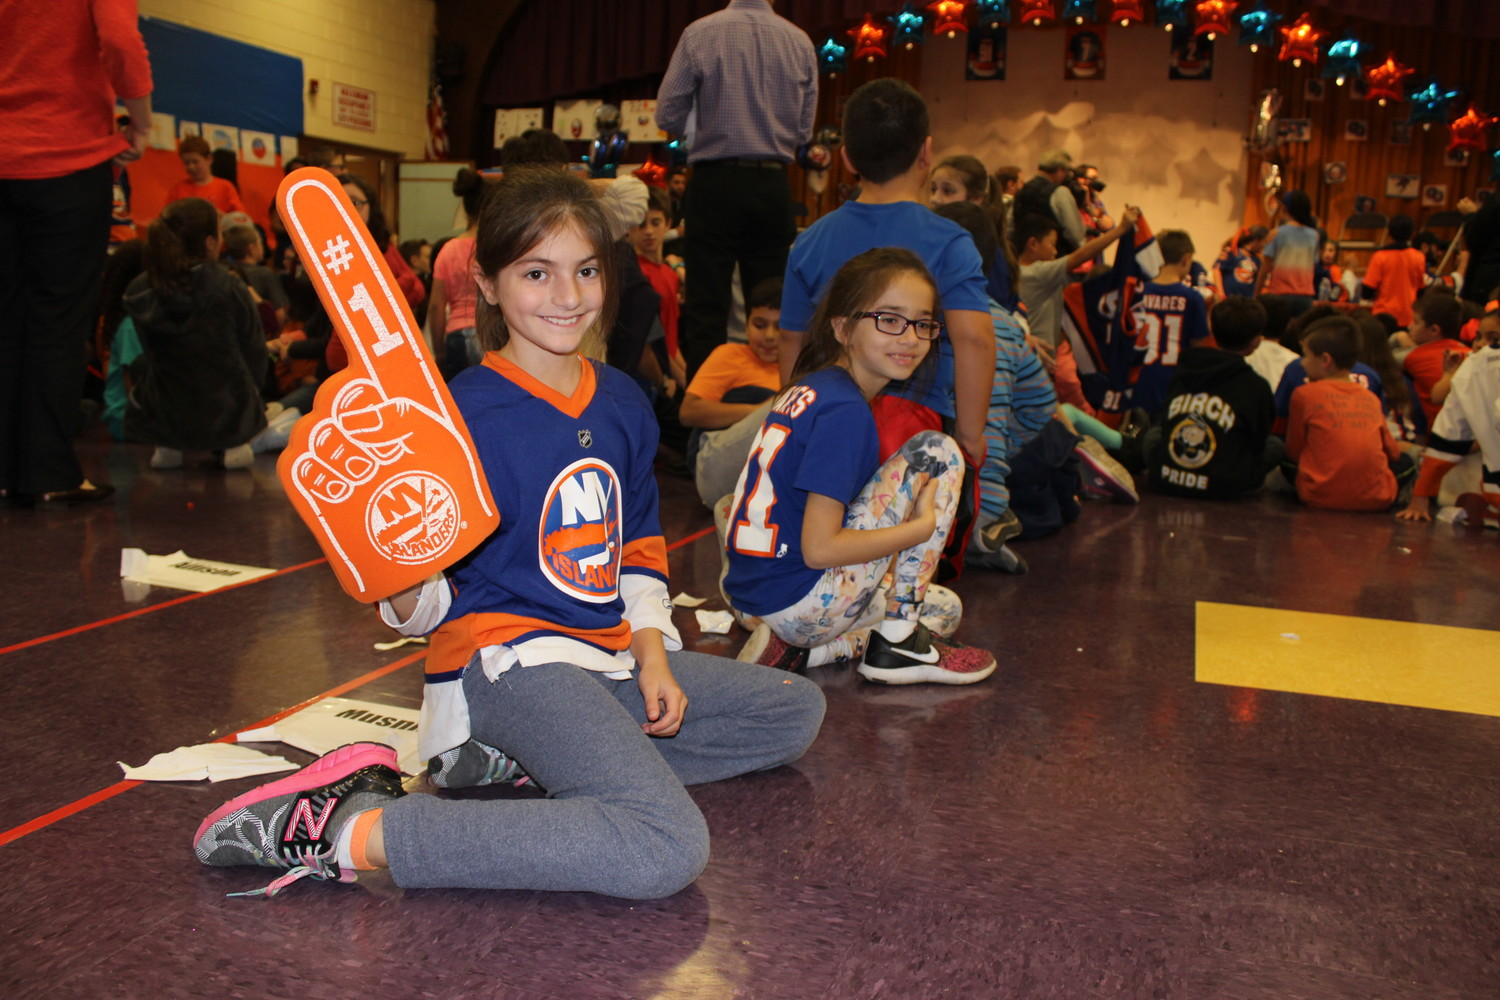 Avery Charney, a fourth-grade student, came to school decked out in Islanders gear to meet the players.